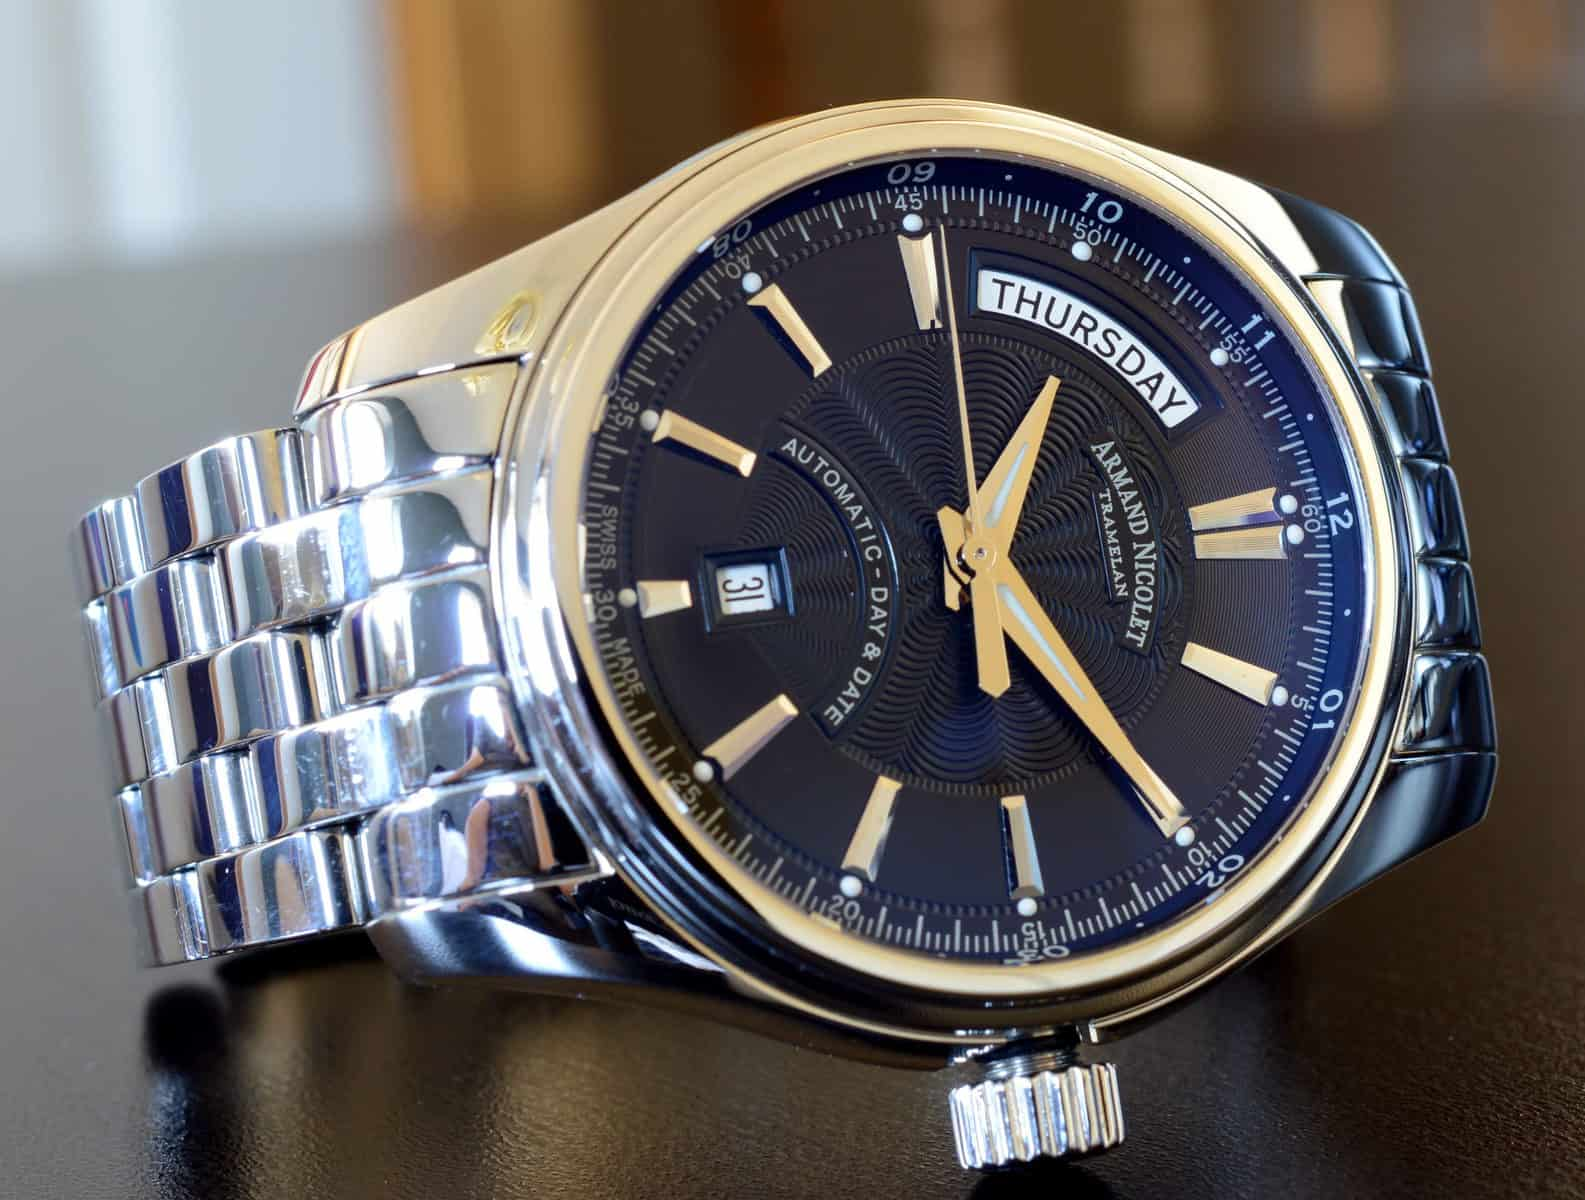 Armand nicolet m02 day date review reviews by wyca for Armand nicolet watches